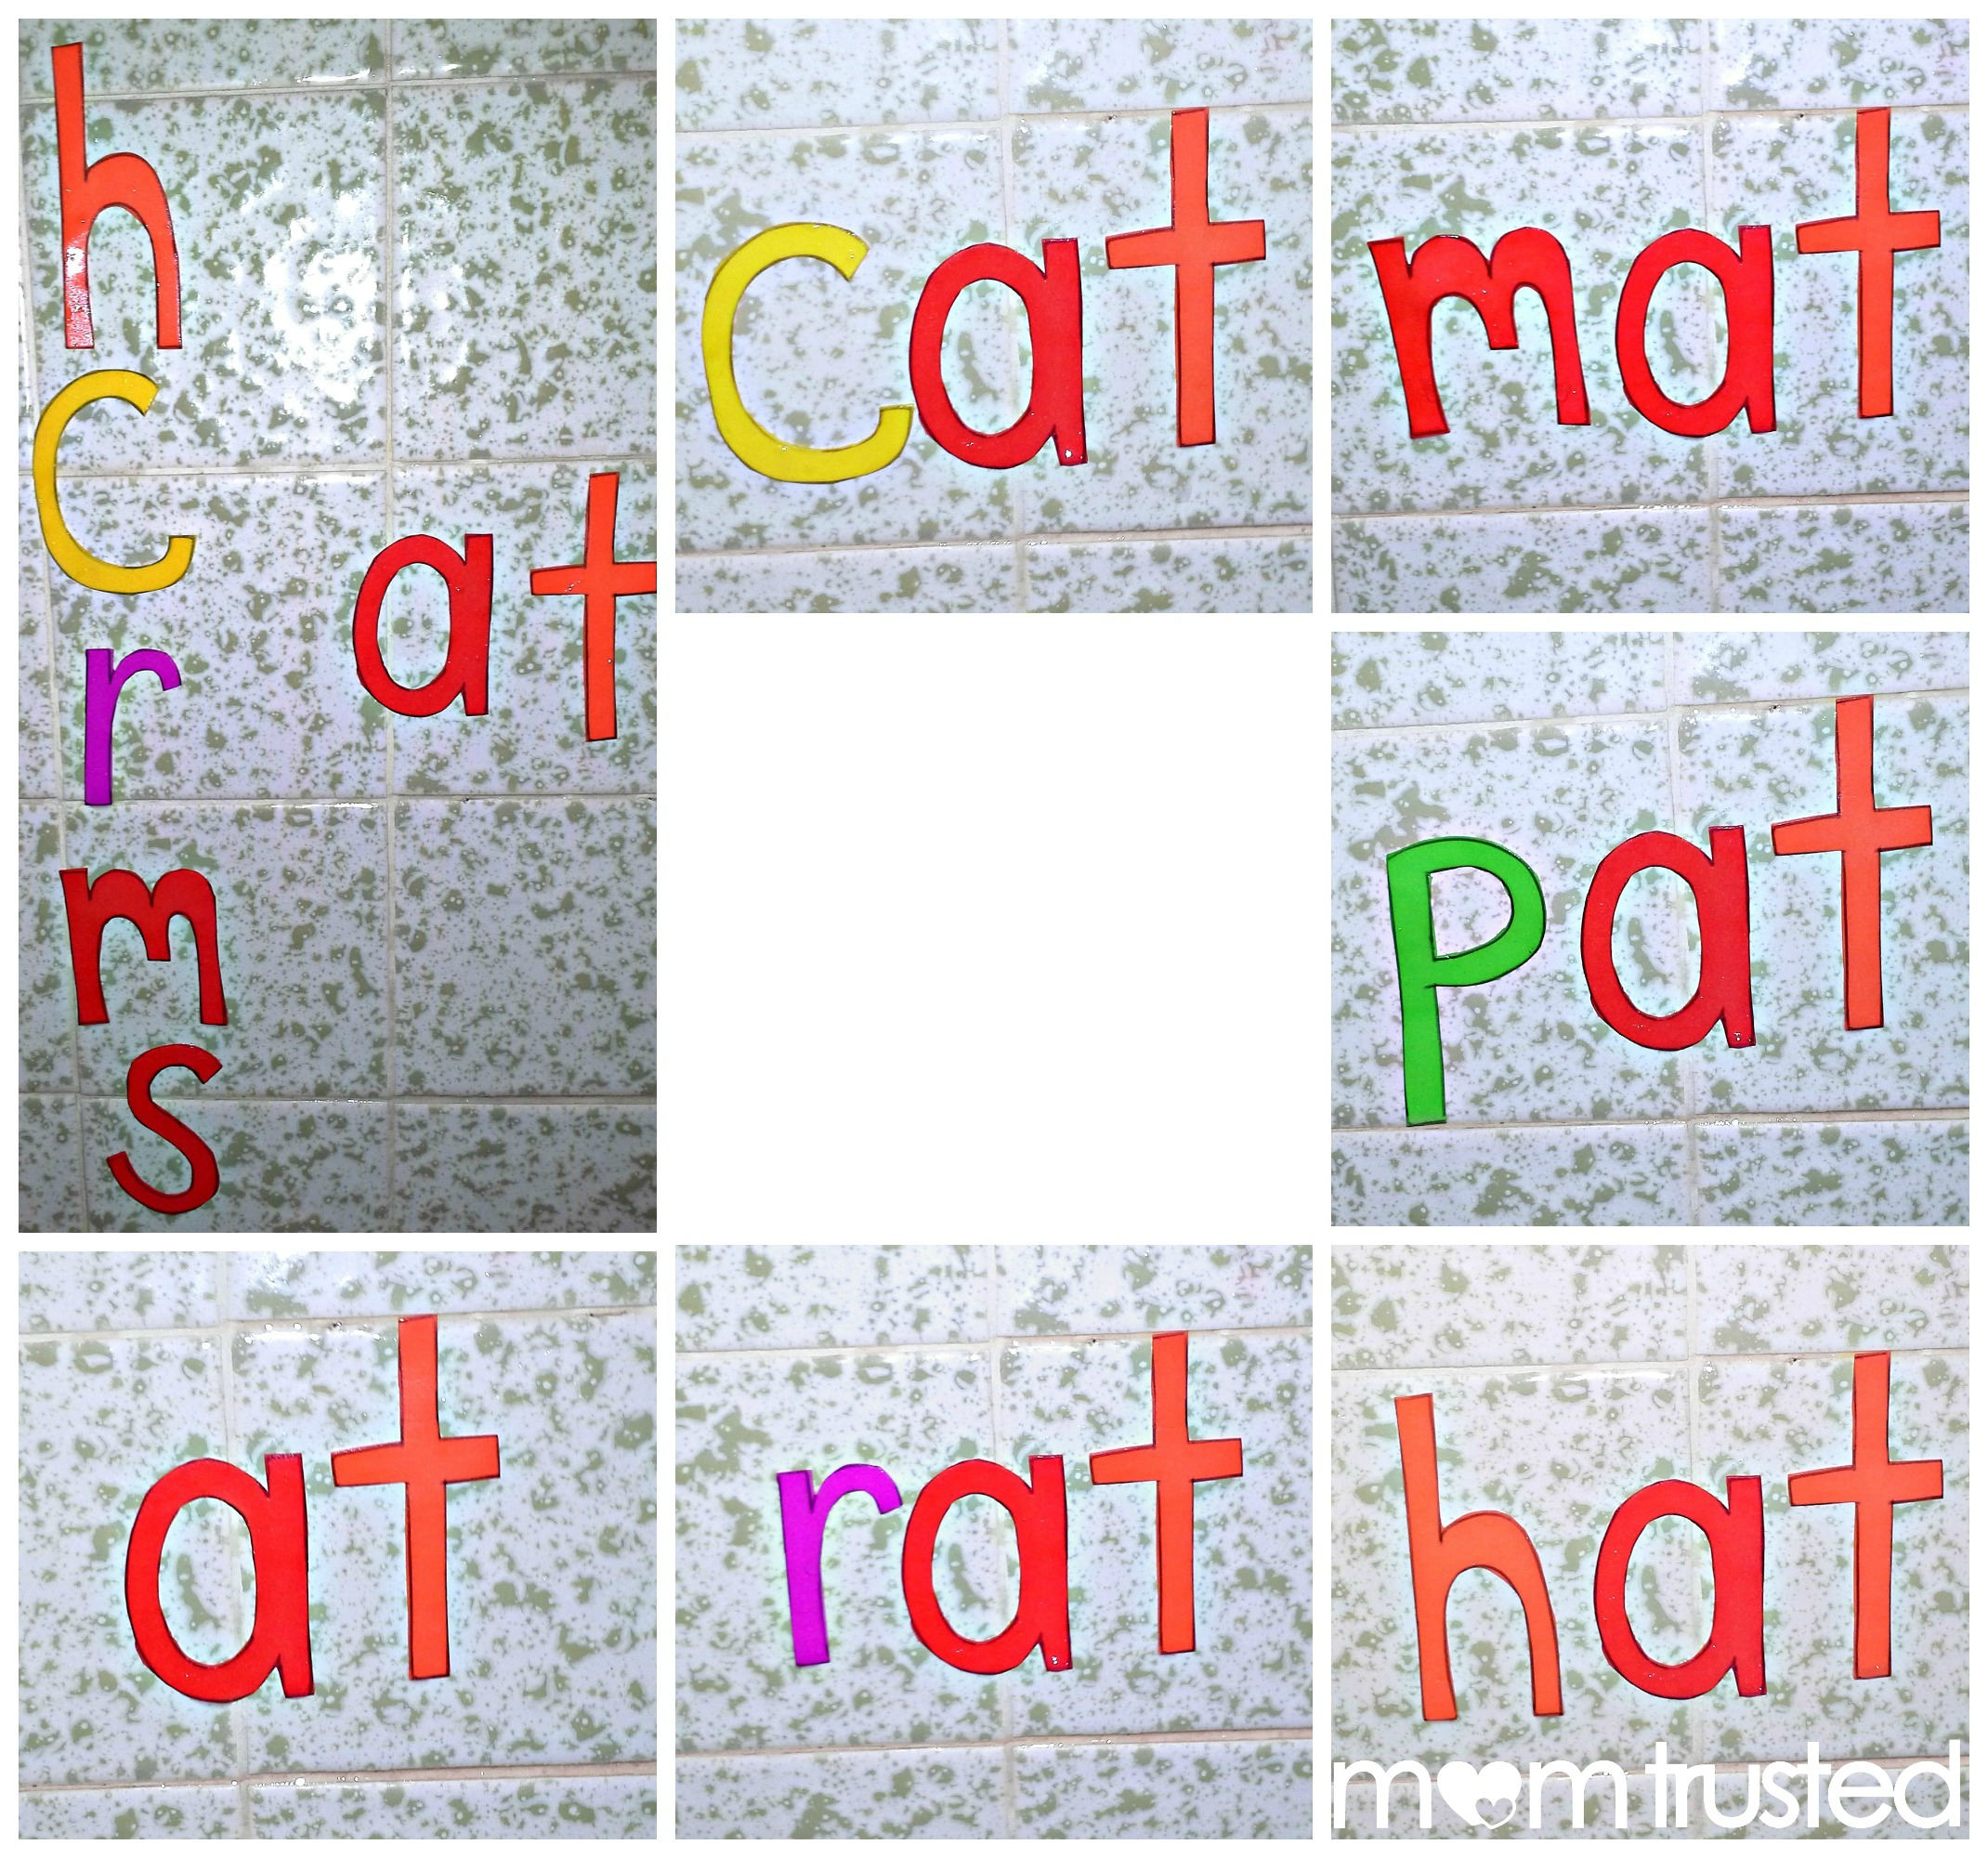 Bath Time Foam Letters, Numbers, and Shapes PicMonkey Collage3a1